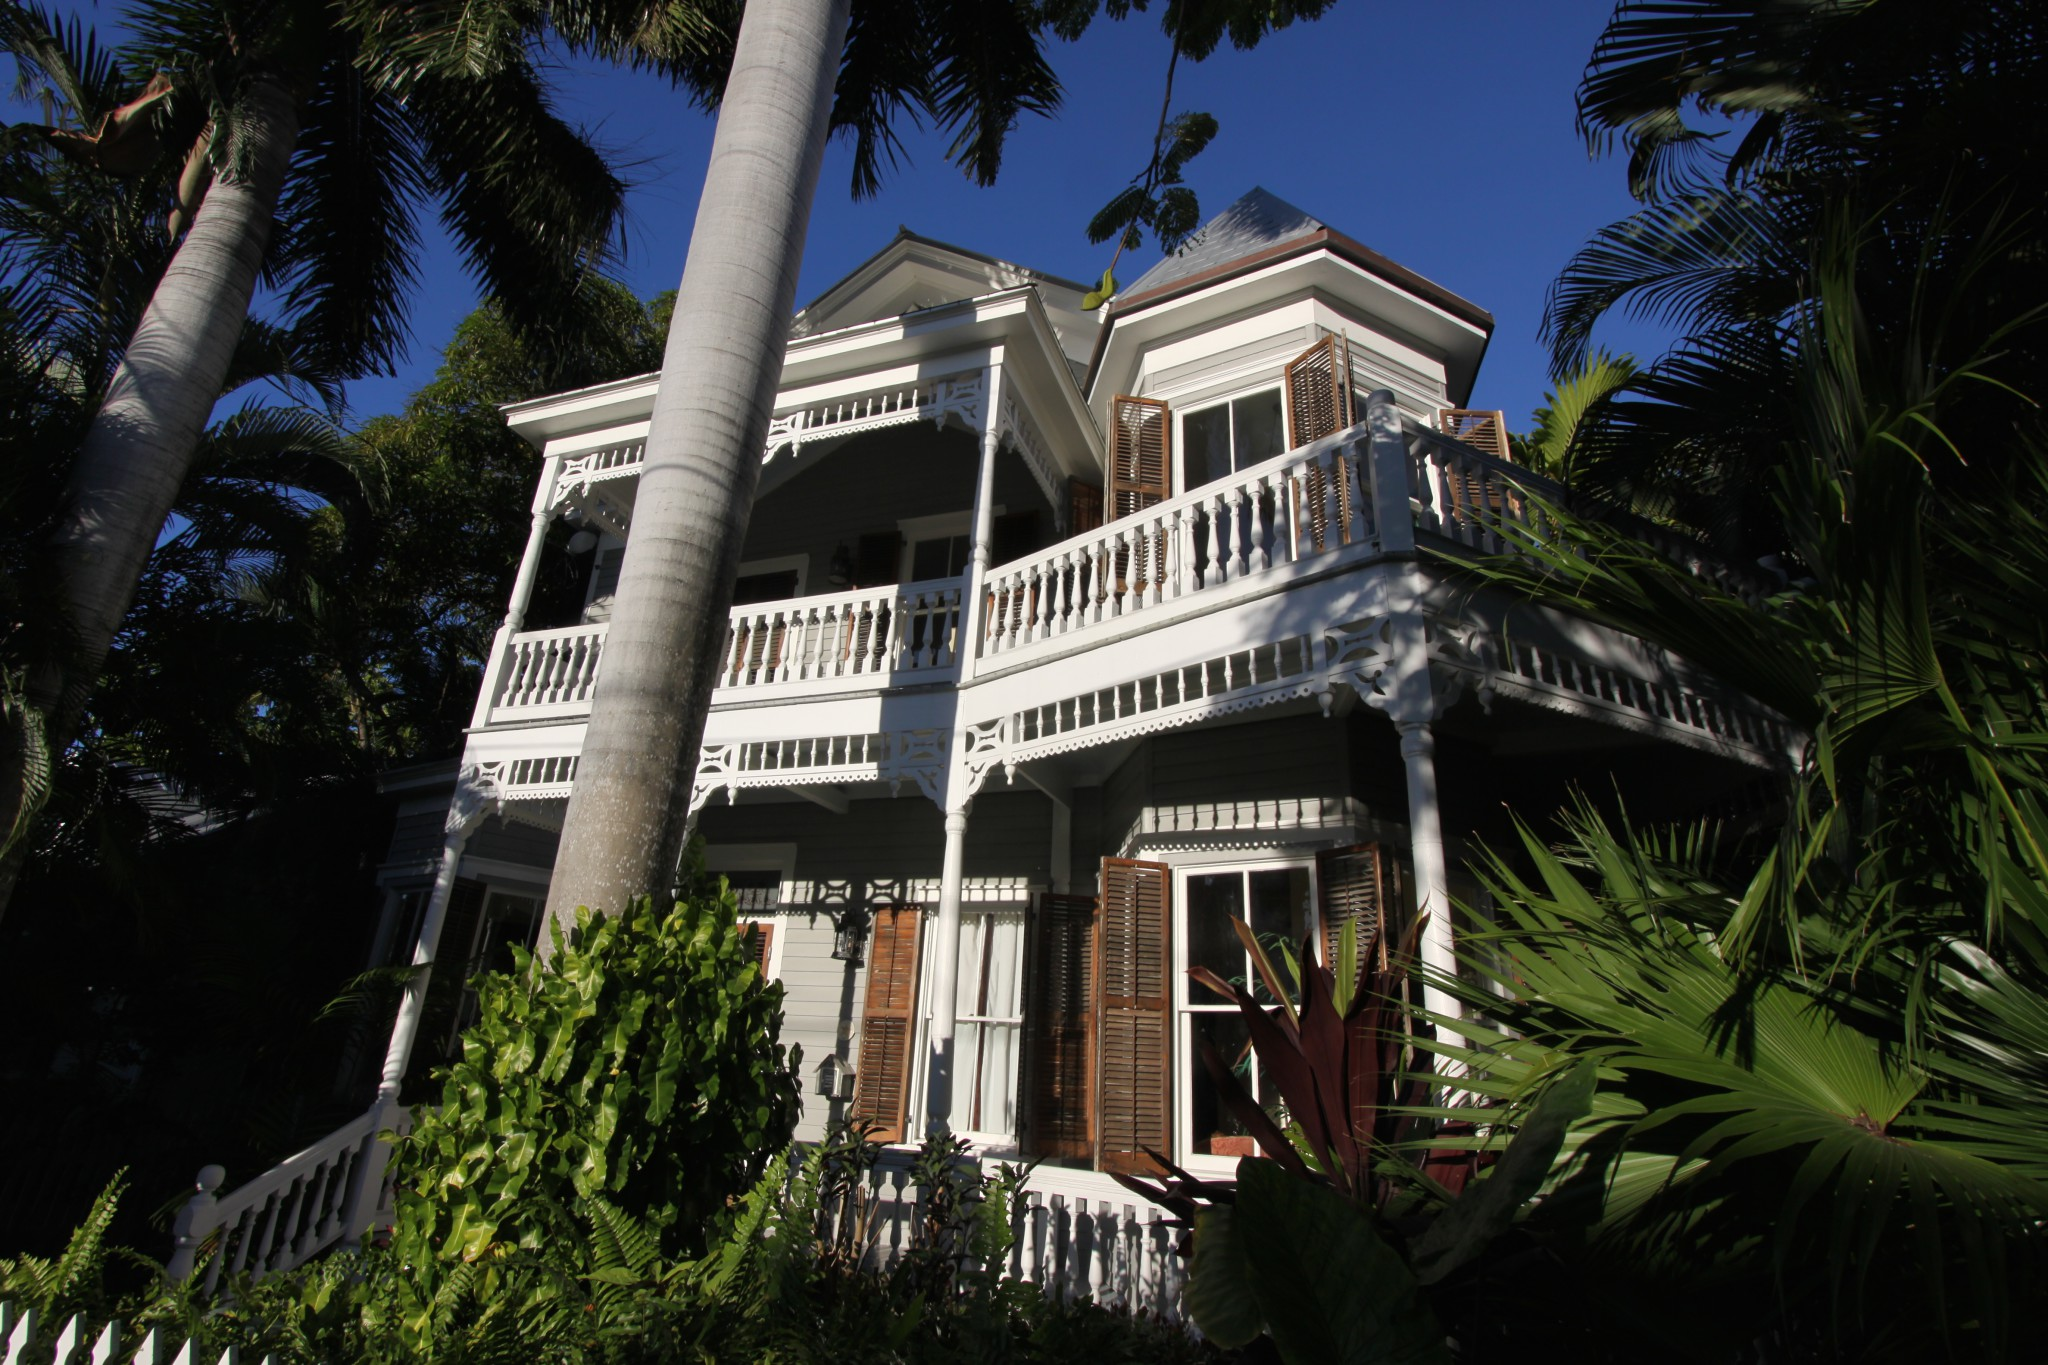 One day in Key West, a typical house